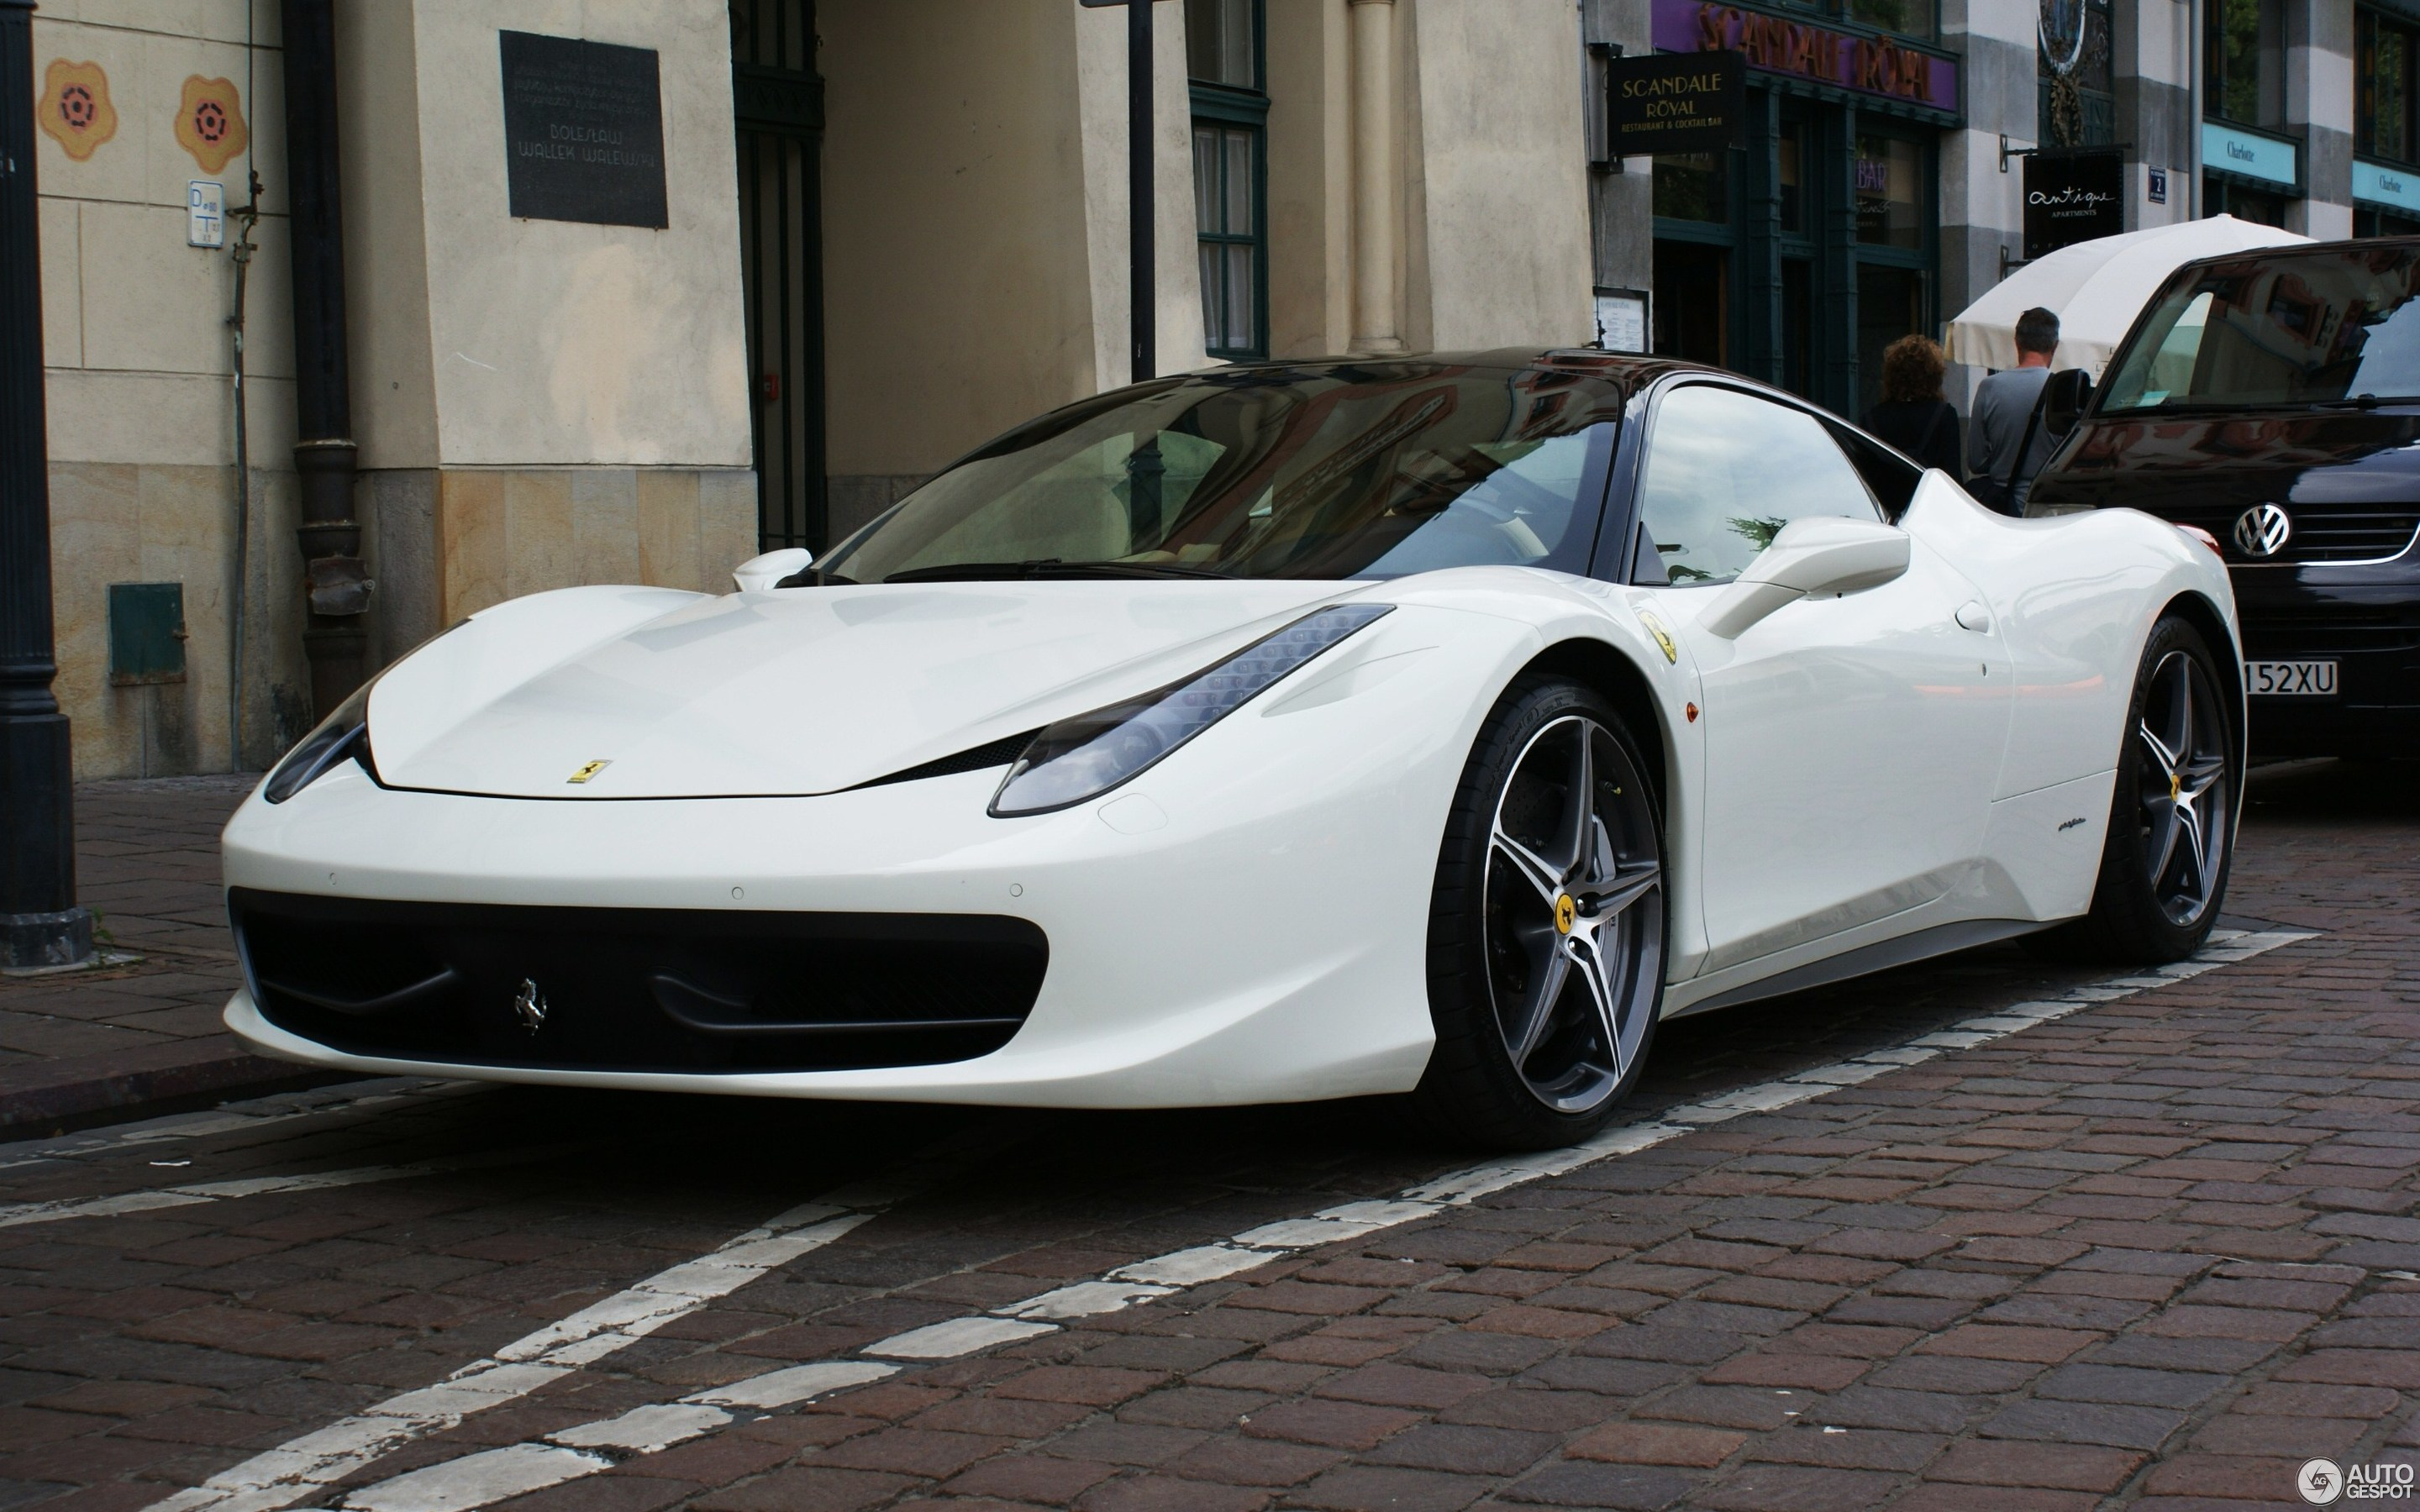 for sale italia used c ferrari htm great neck l ny stock near main